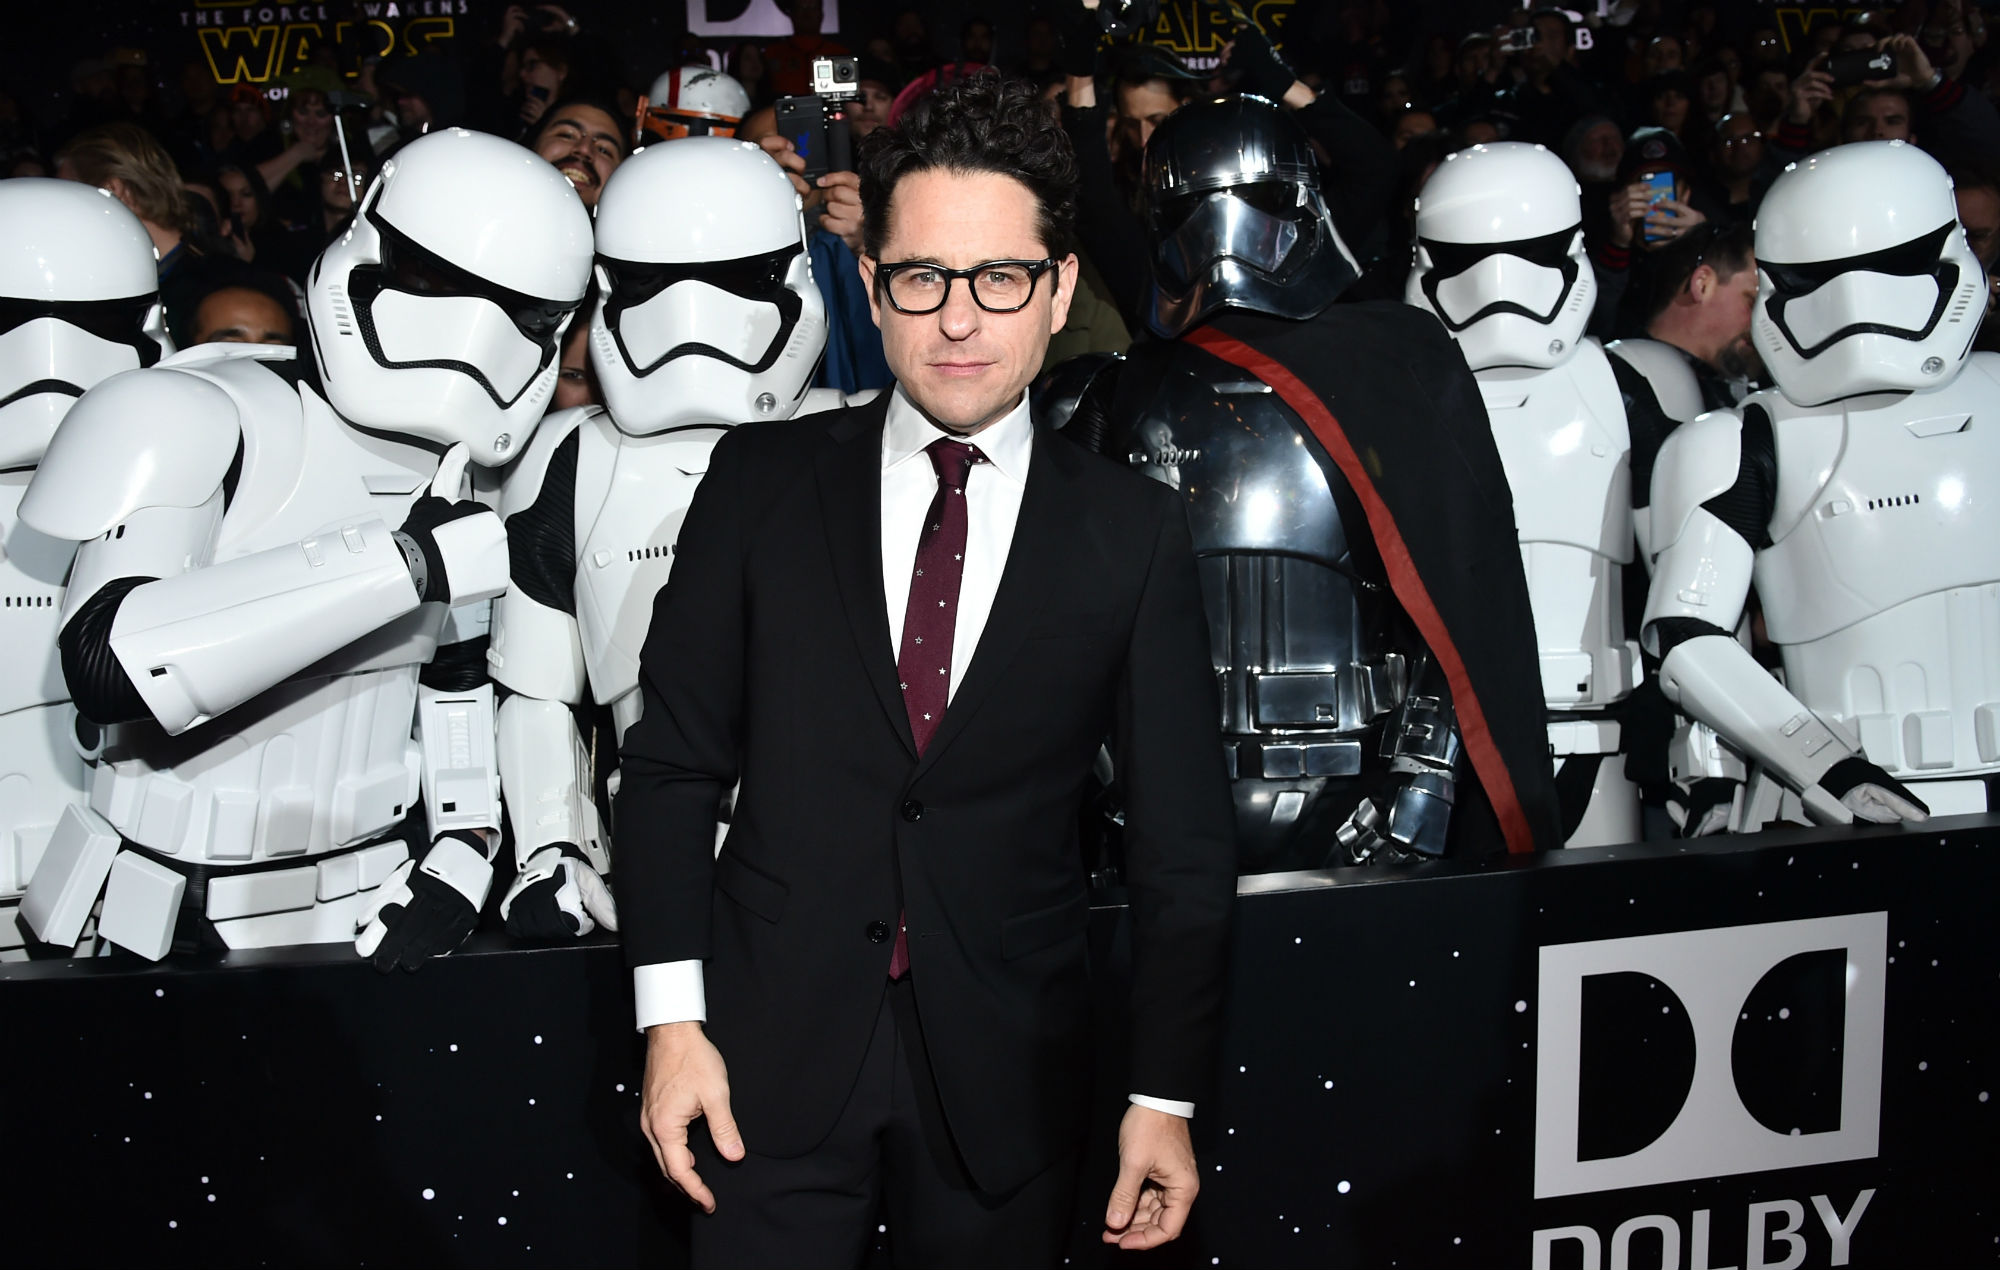 Jj Abrams Reveals Why Star Wars Episode 9 Is Called The